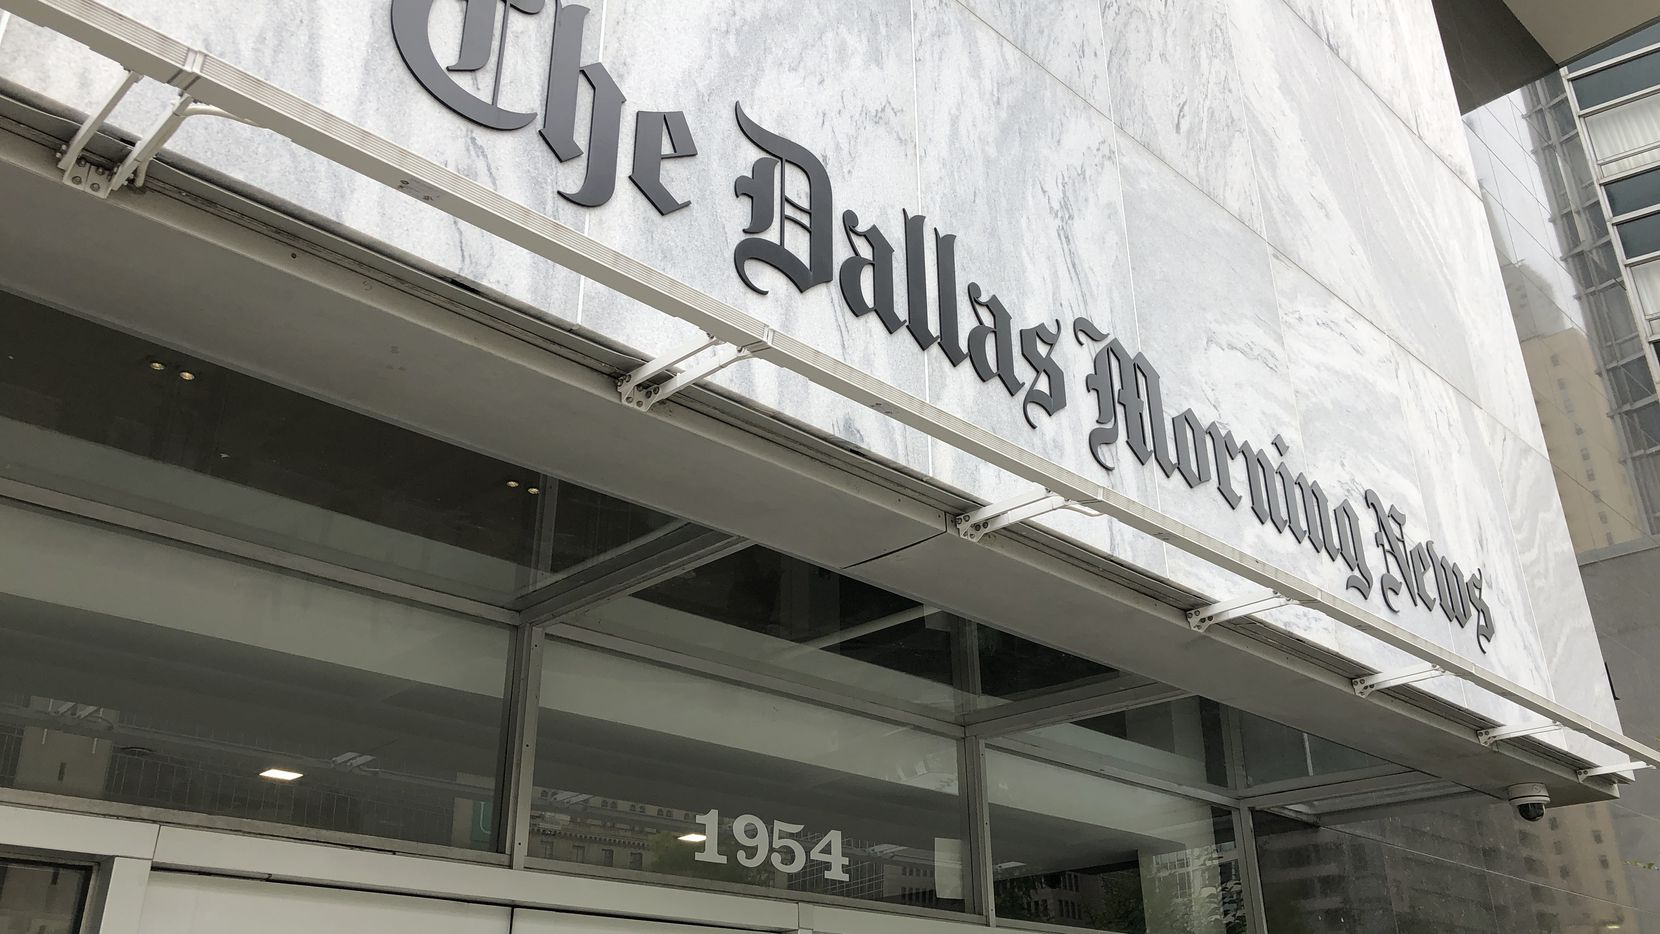 The Dallas Morning News' parent company intends to restate its financial results for 2018 and possibly 2019 at the urging of its auditing firm.